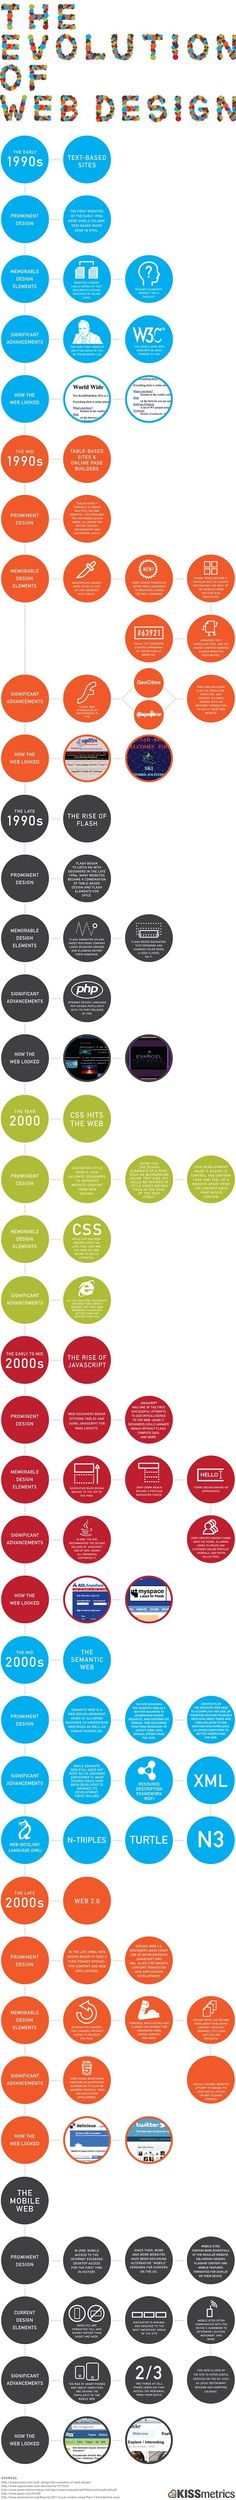 The web has come a long way since Tim Berners-Lee created the first website way back in 1991. Here's an infographic that takes you on a tour of web design, starting with those h...